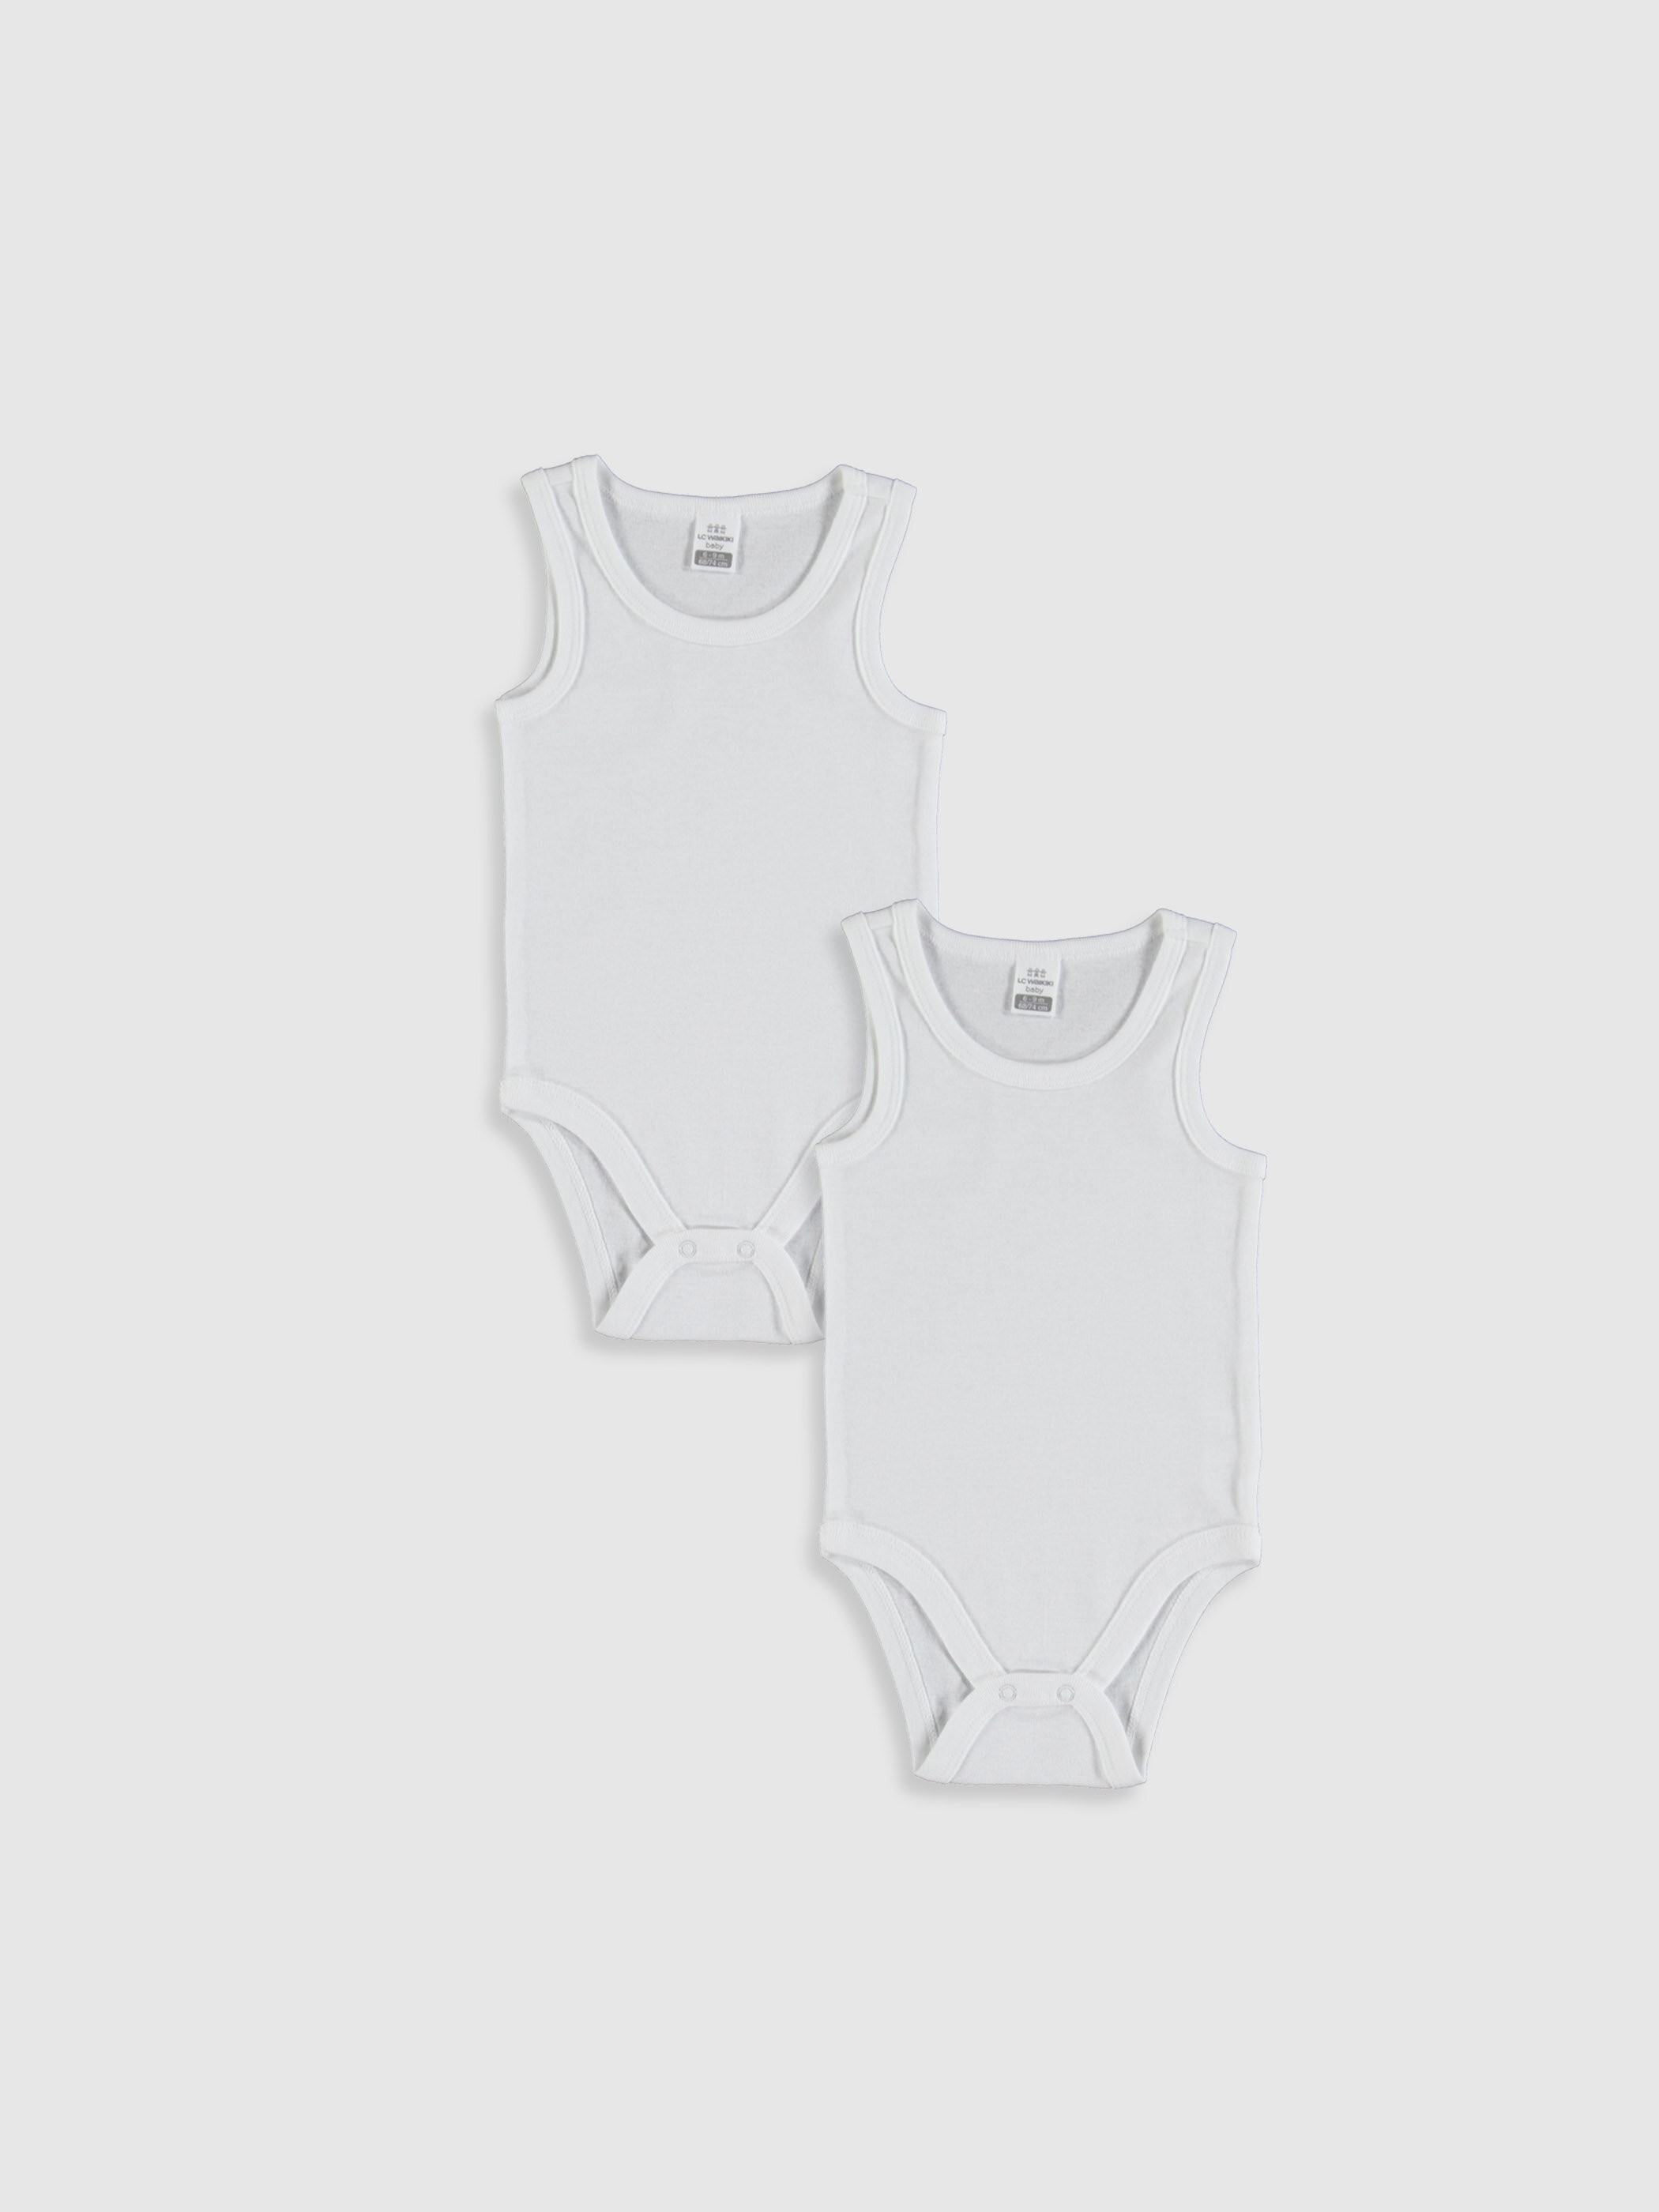 WHITE - Baby Boy's Printed Jumpsuit - 0S7016Z1